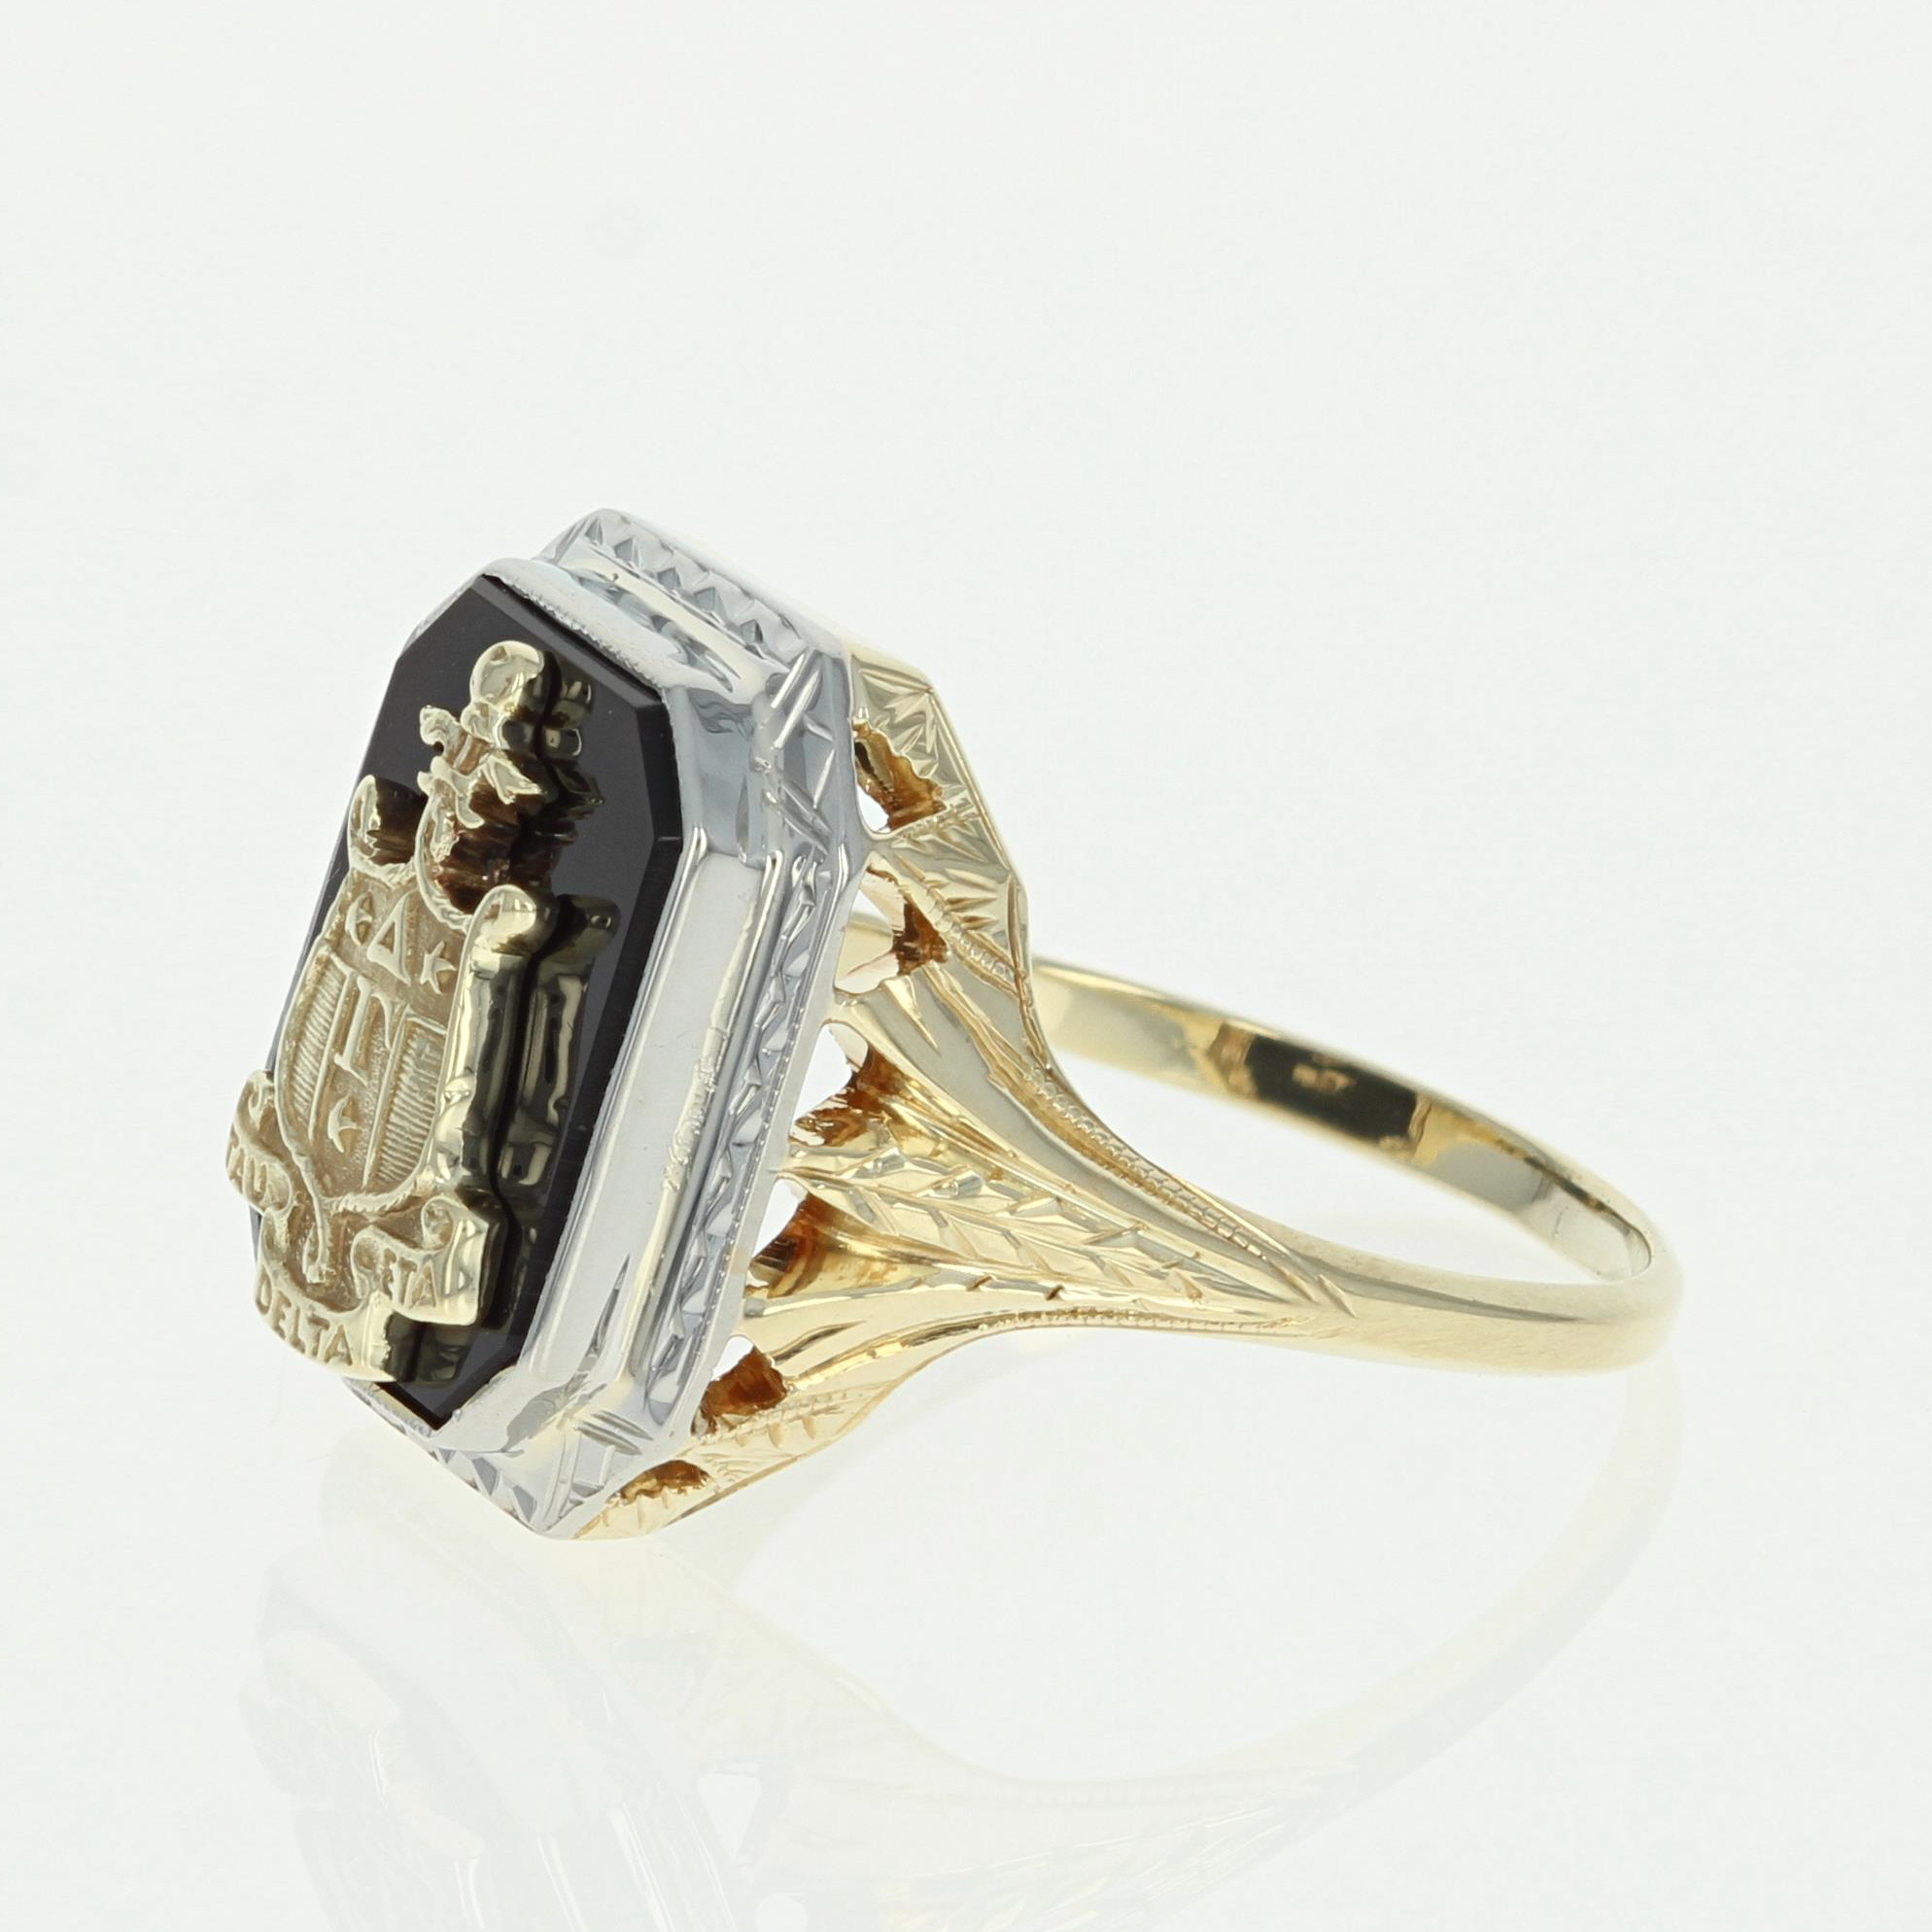 crest family ring mcdermott rings pin pinterest